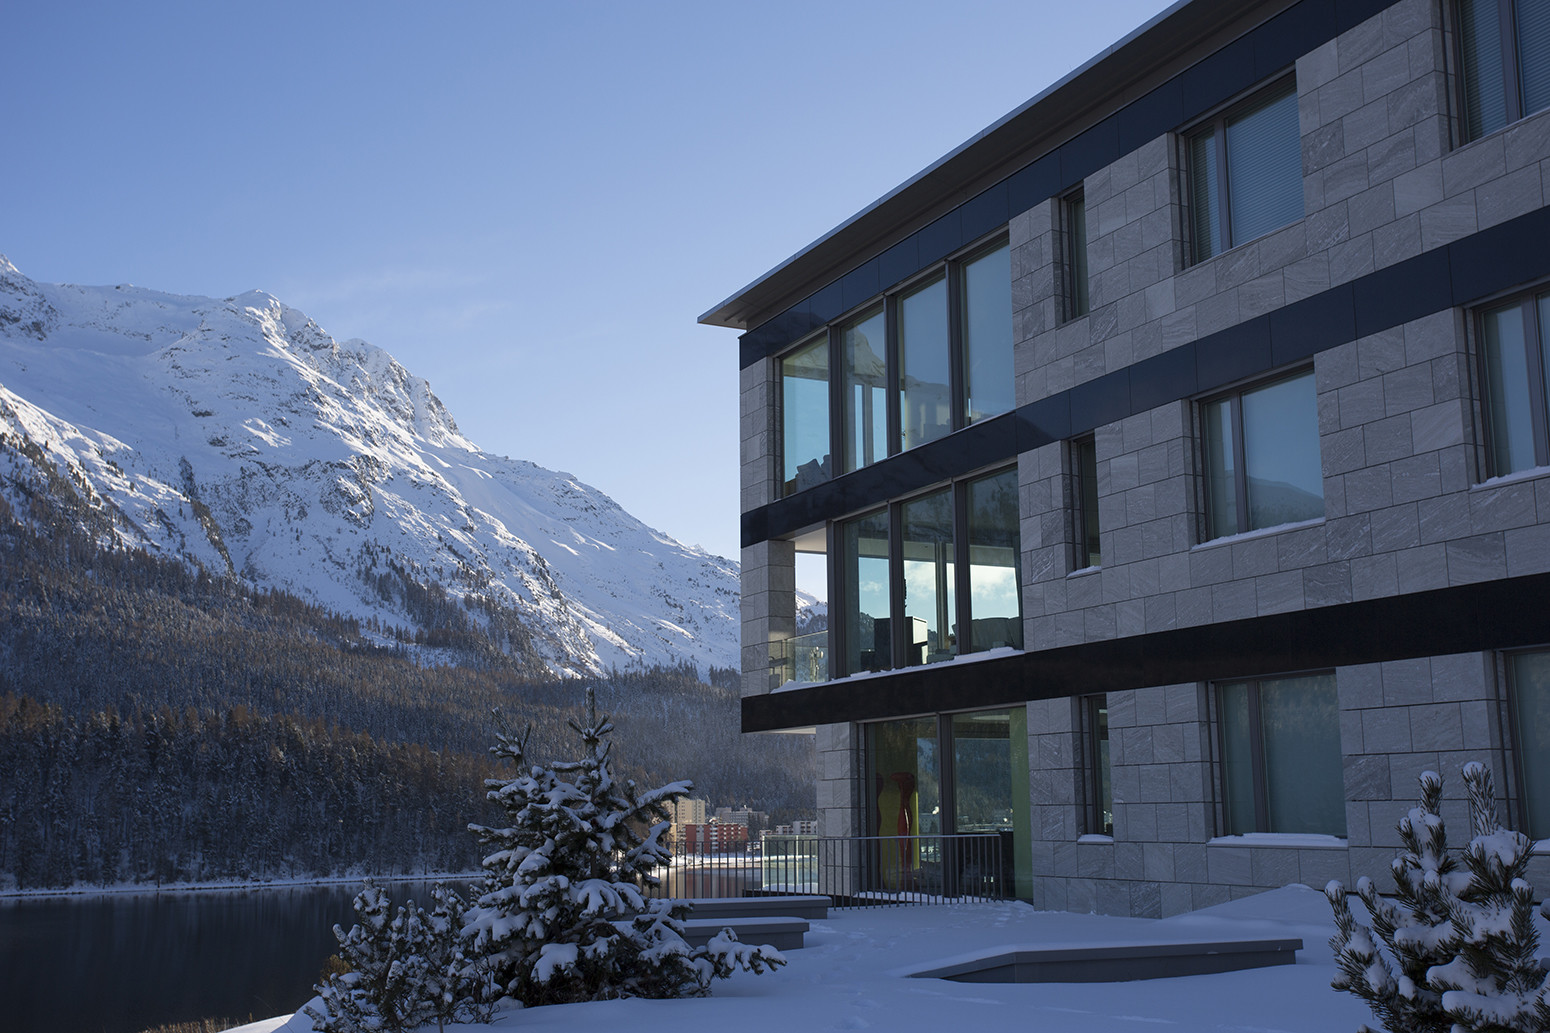 Kings-avenue-st-moritz-snow-tv-wifi-indoor-jacuzzi-childfriendly-covered-parking-fireplace-area-st-mortiz-005